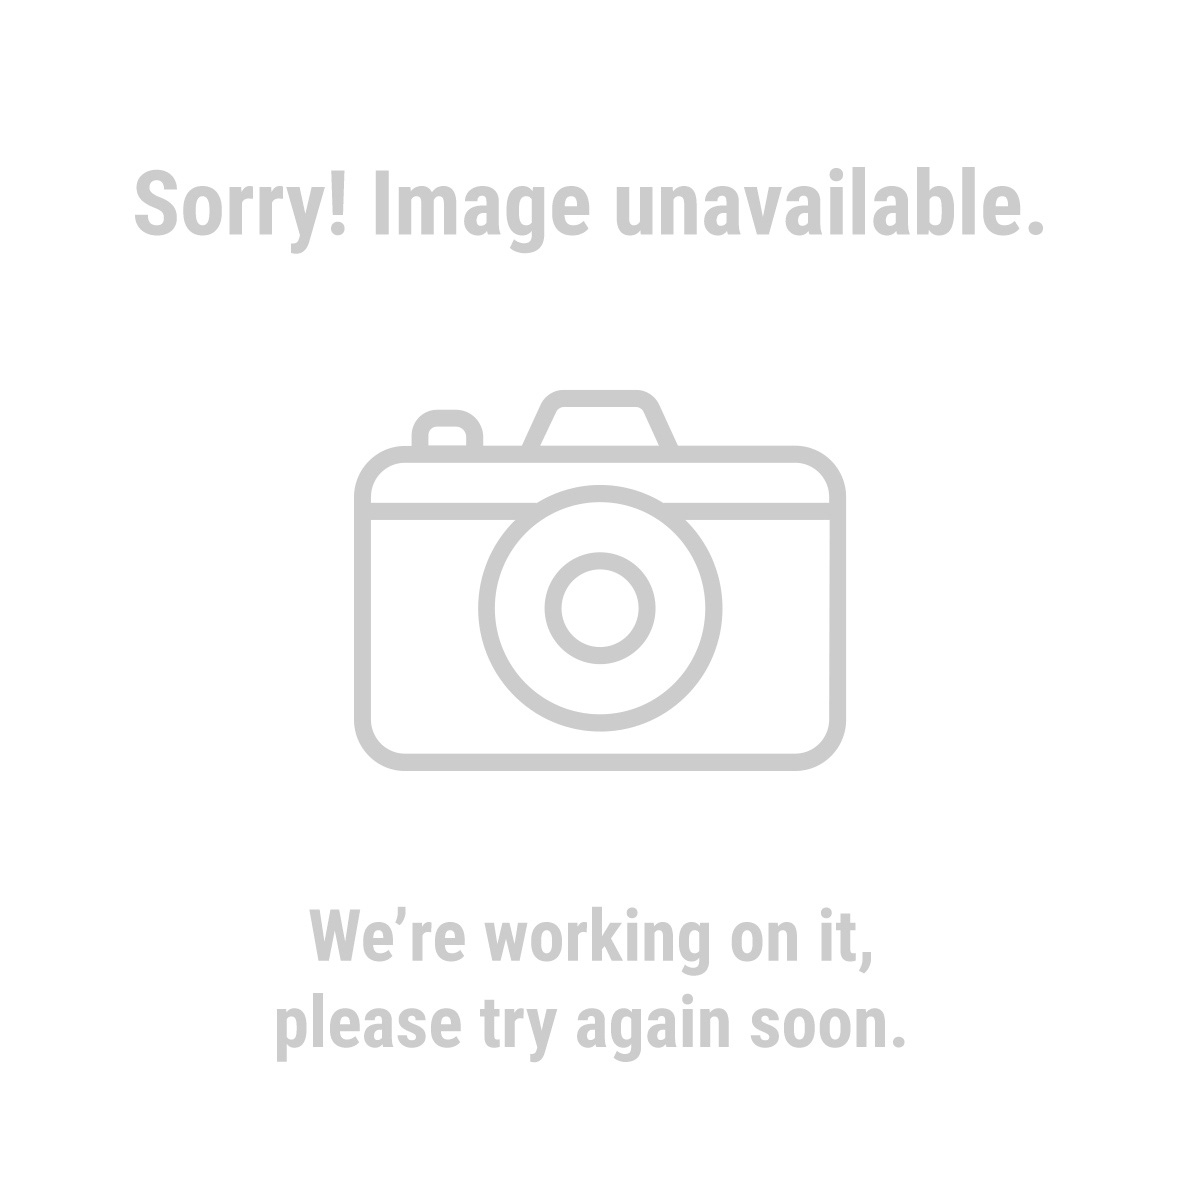 "Chicago Electric Welding Systems 69527 0.030"" ER70S-6 Carbon Steel Welding Wire, 2 Lb. Roll"